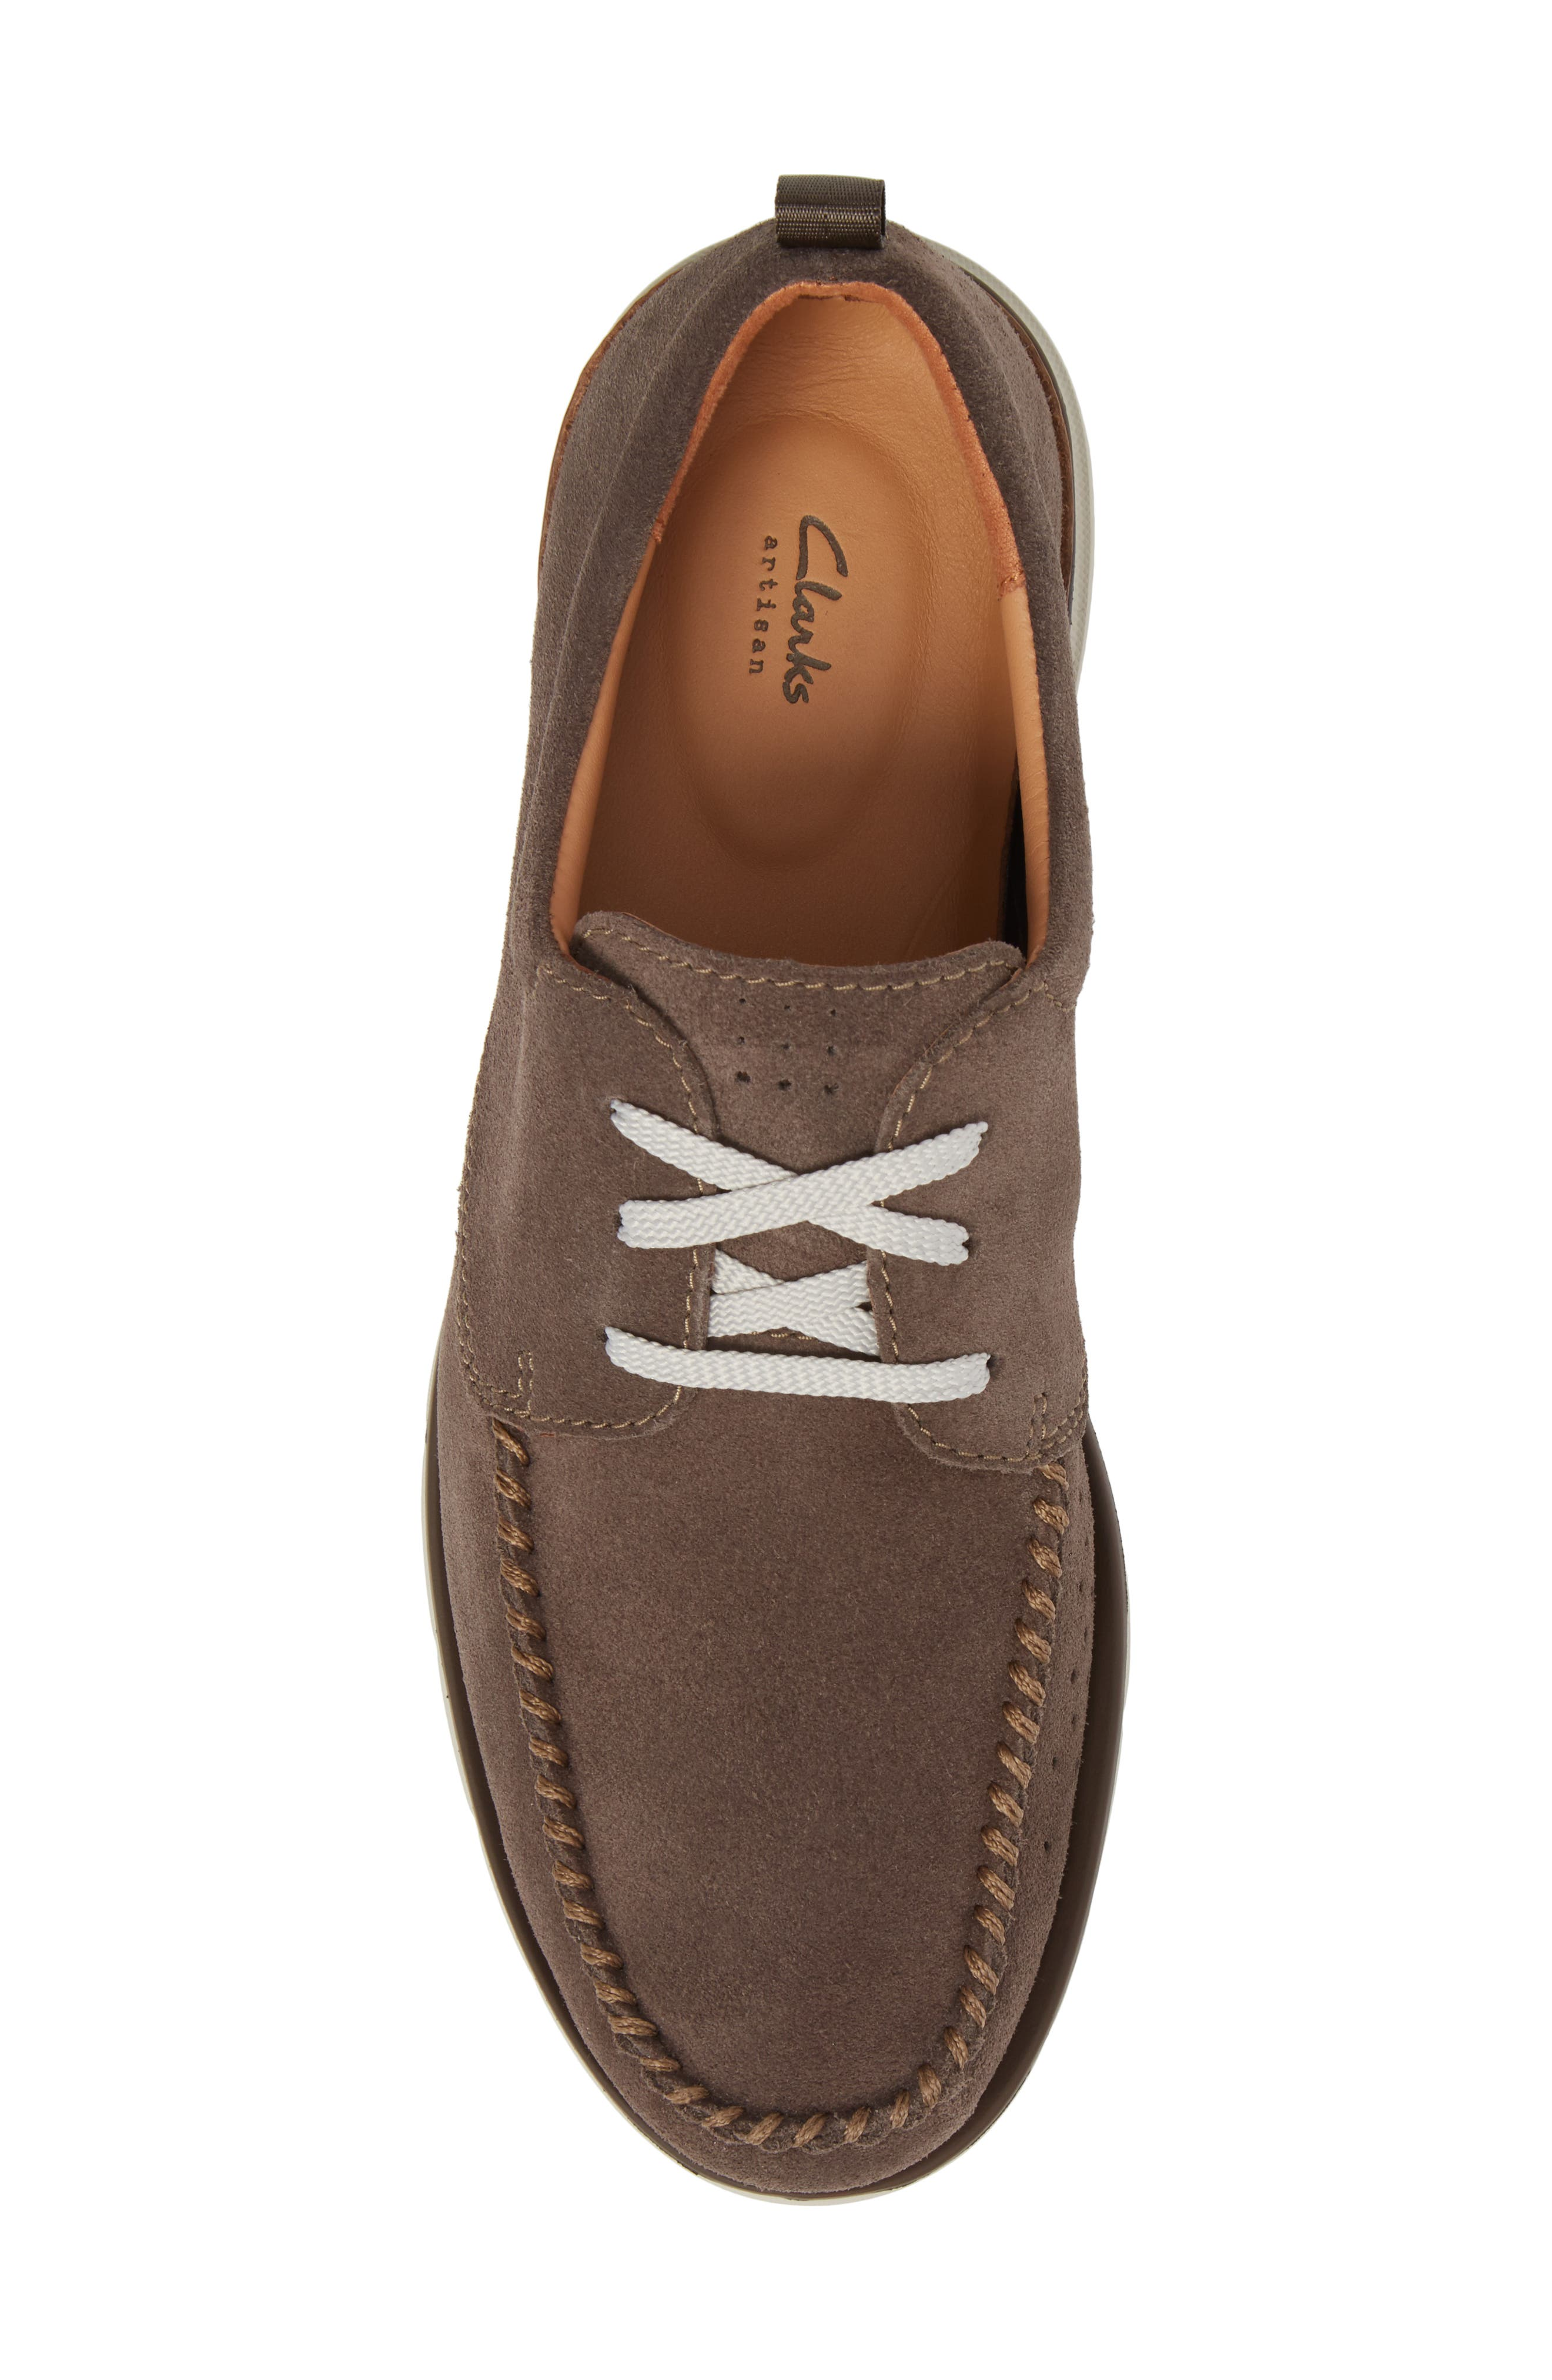 Edgewood Mix Moc Toe Derby,                             Alternate thumbnail 5, color,                             Taupe Suede